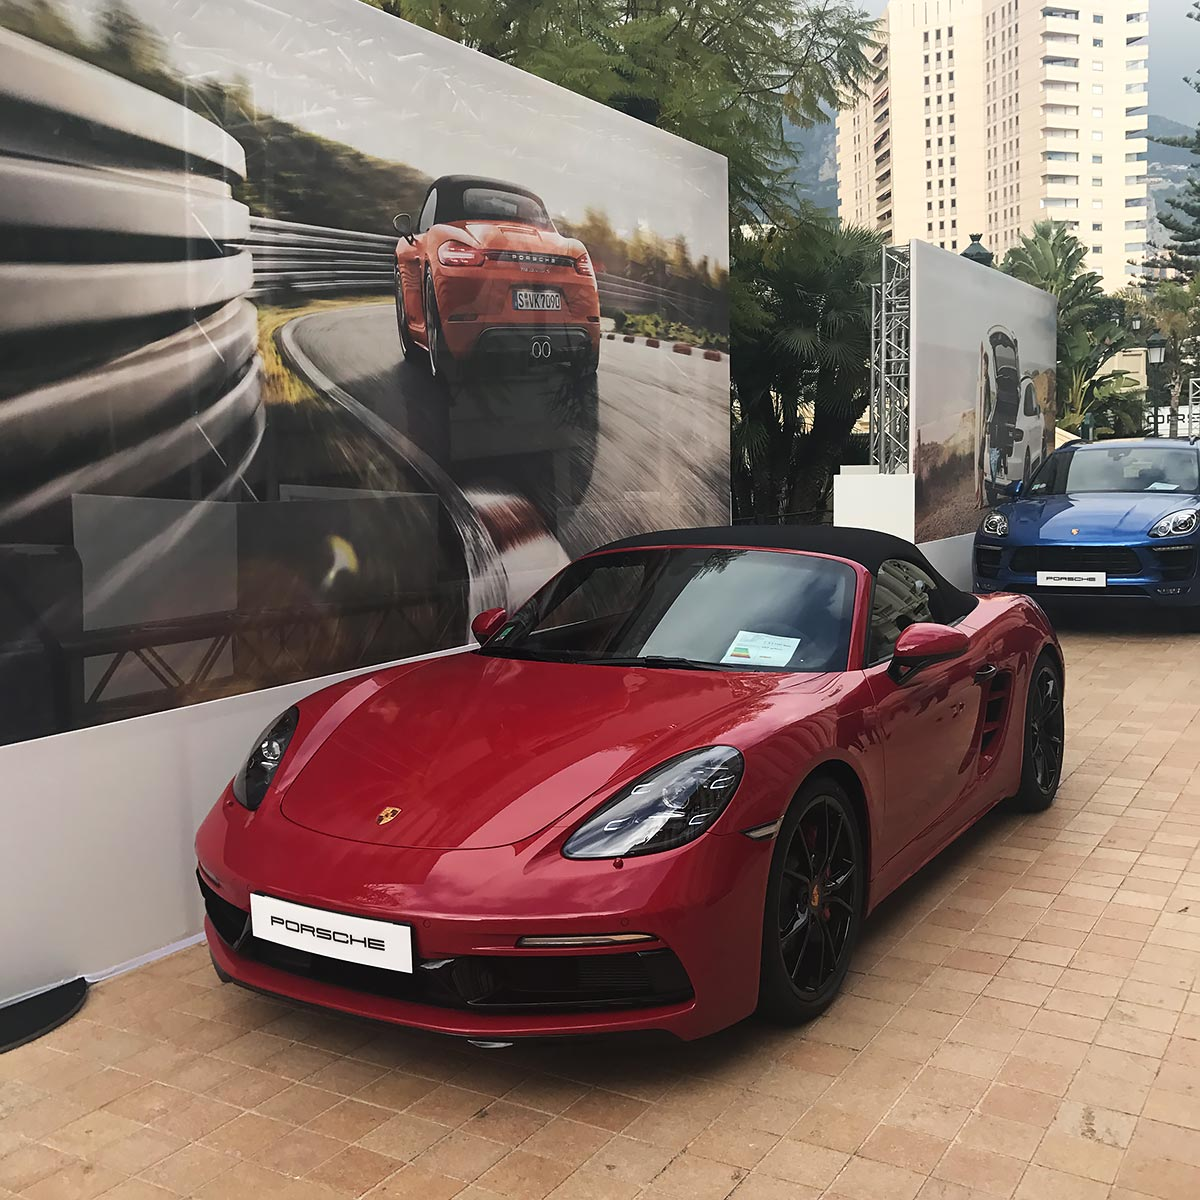 Monaco International Motor Show - Porsche 718 Boxster